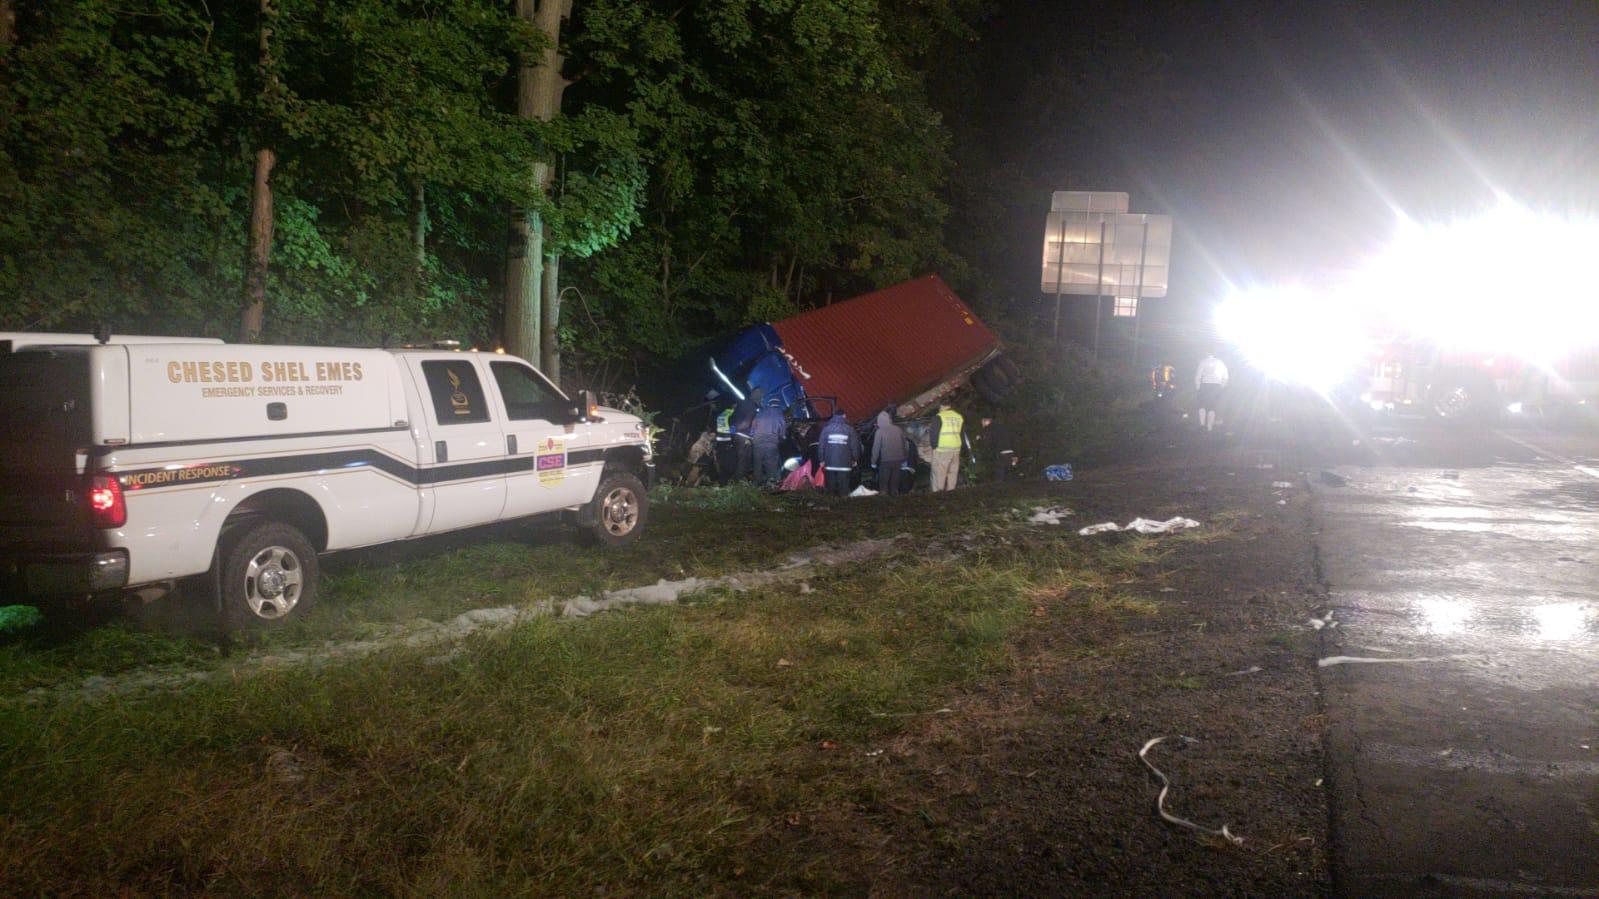 Violent accident on the NYS Thruway leaves two car occupants dead.